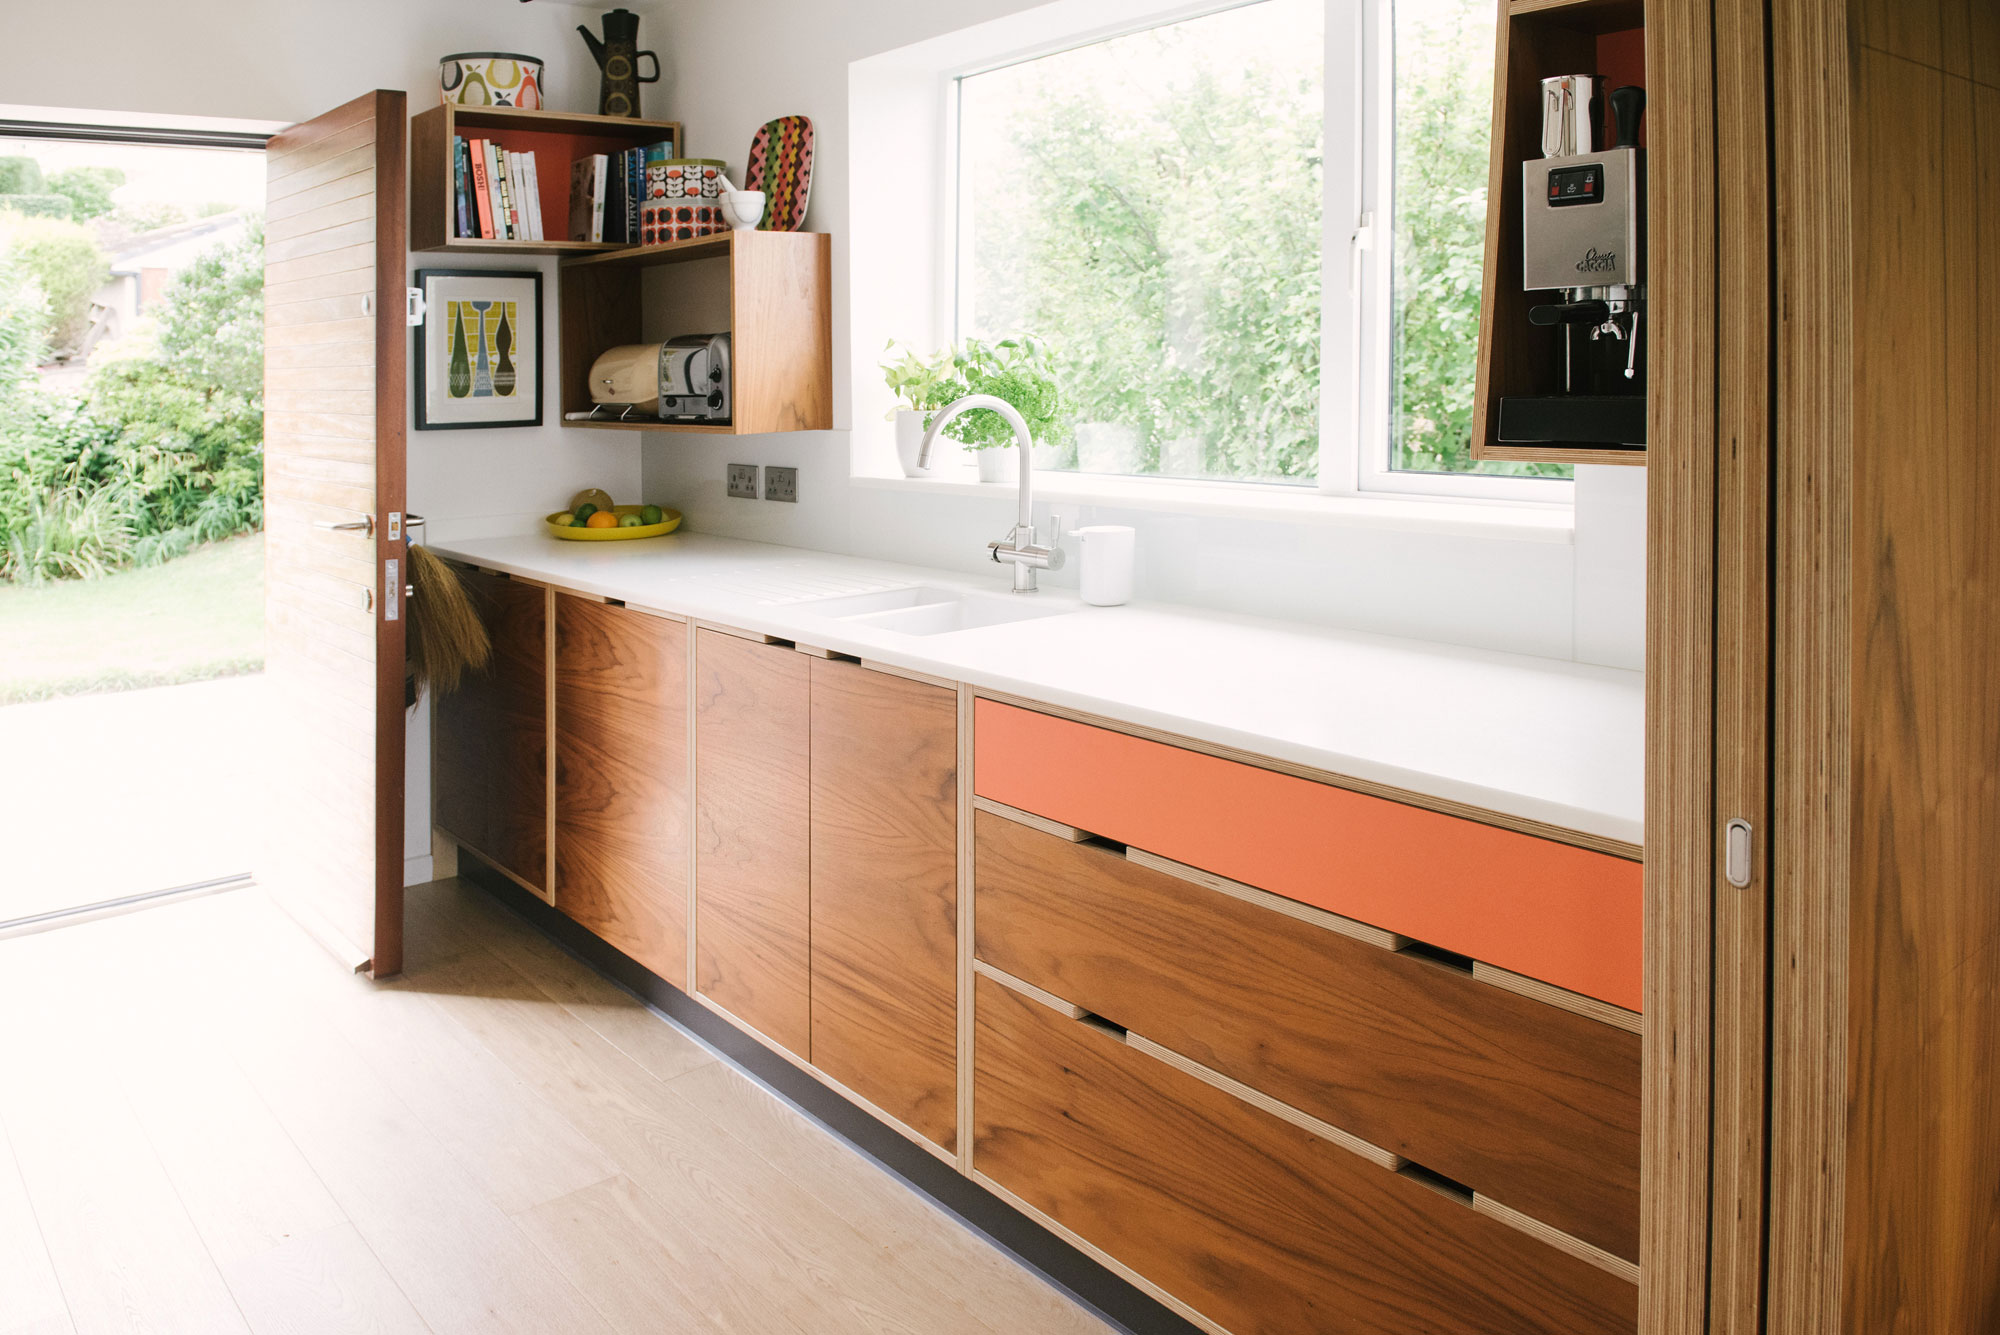 Mid Century Style Plywood Kitchen - Walnut Veneer and Orange Kitchen